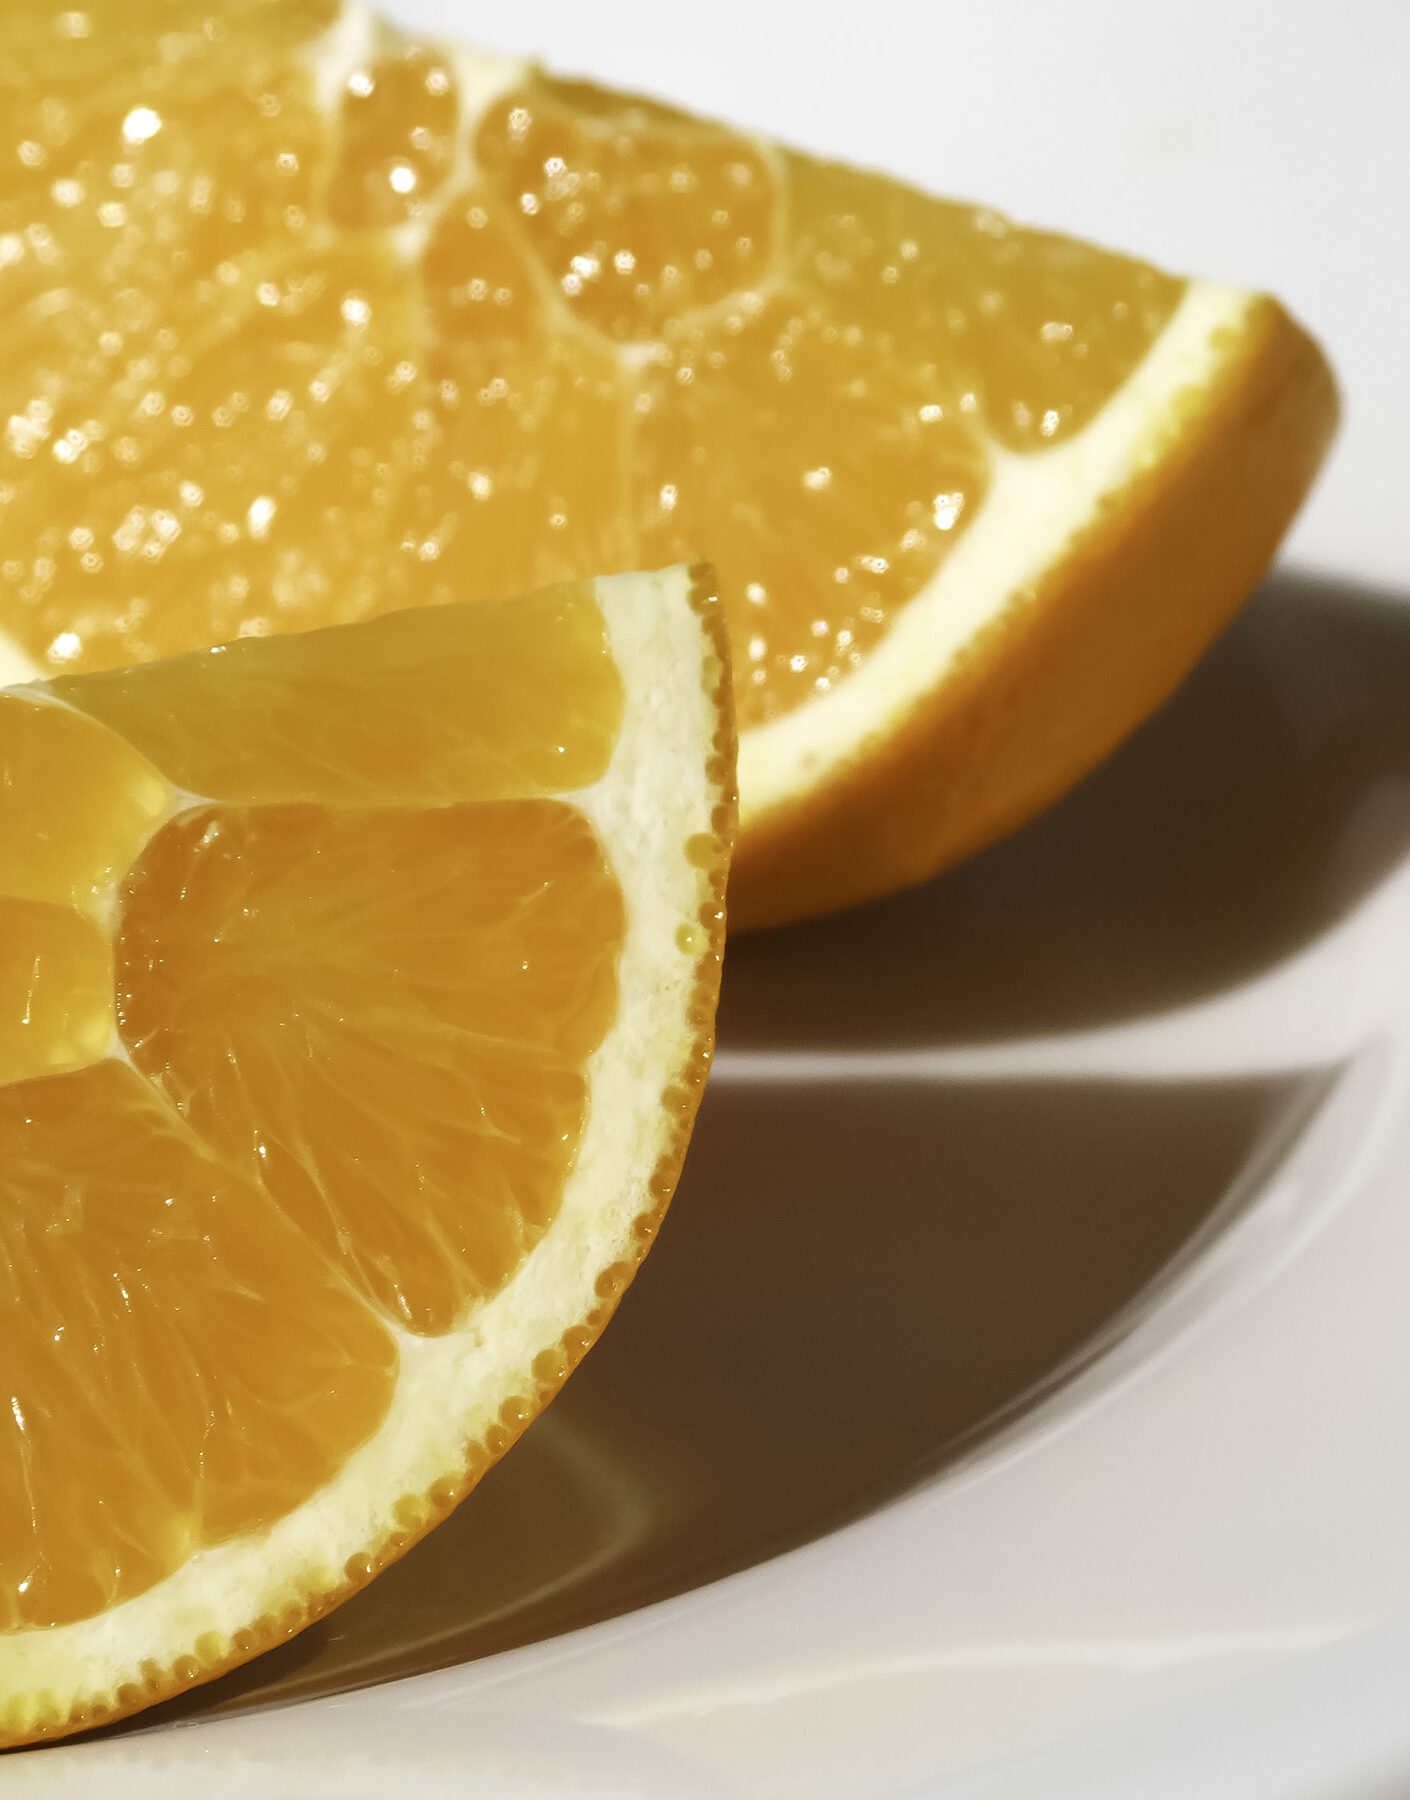 Photo: London food photographer, orange, fresh, fruit, slices, plate, food, healthy, eating, delicious, juicey, eat